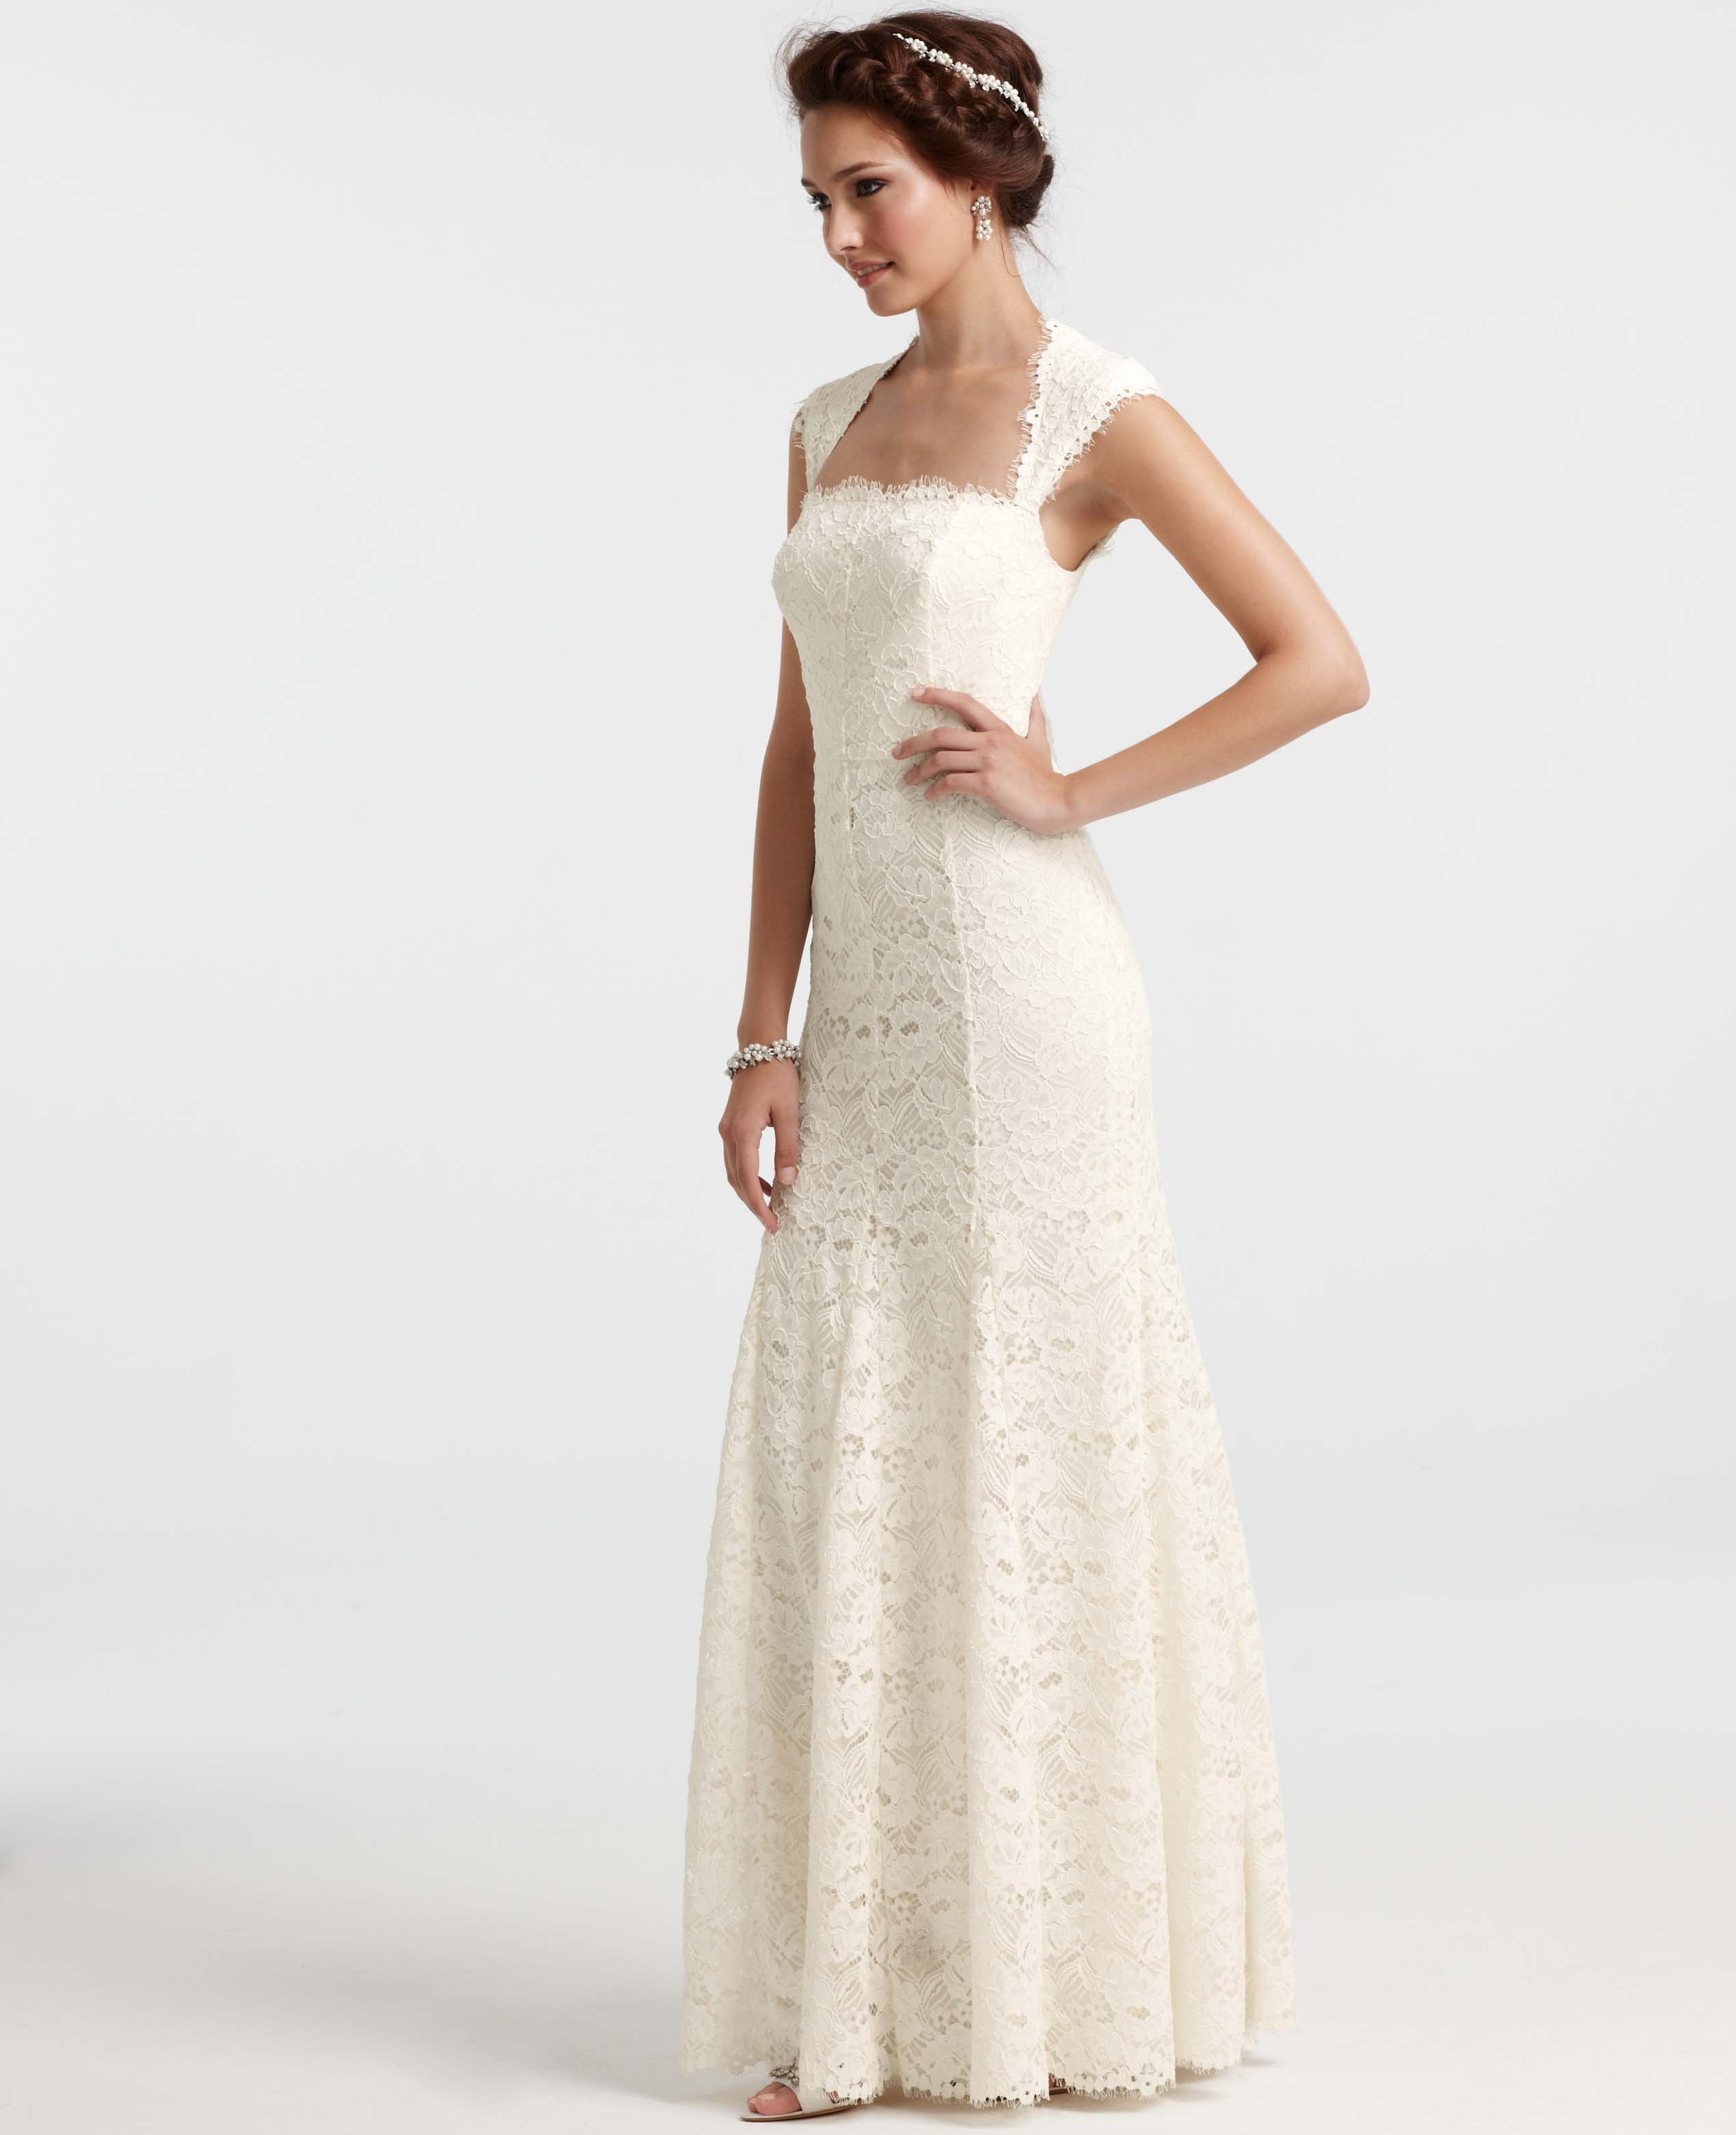 Ann taylor isabella lace wedding dress in white lyst for Wedding dresses ann taylor